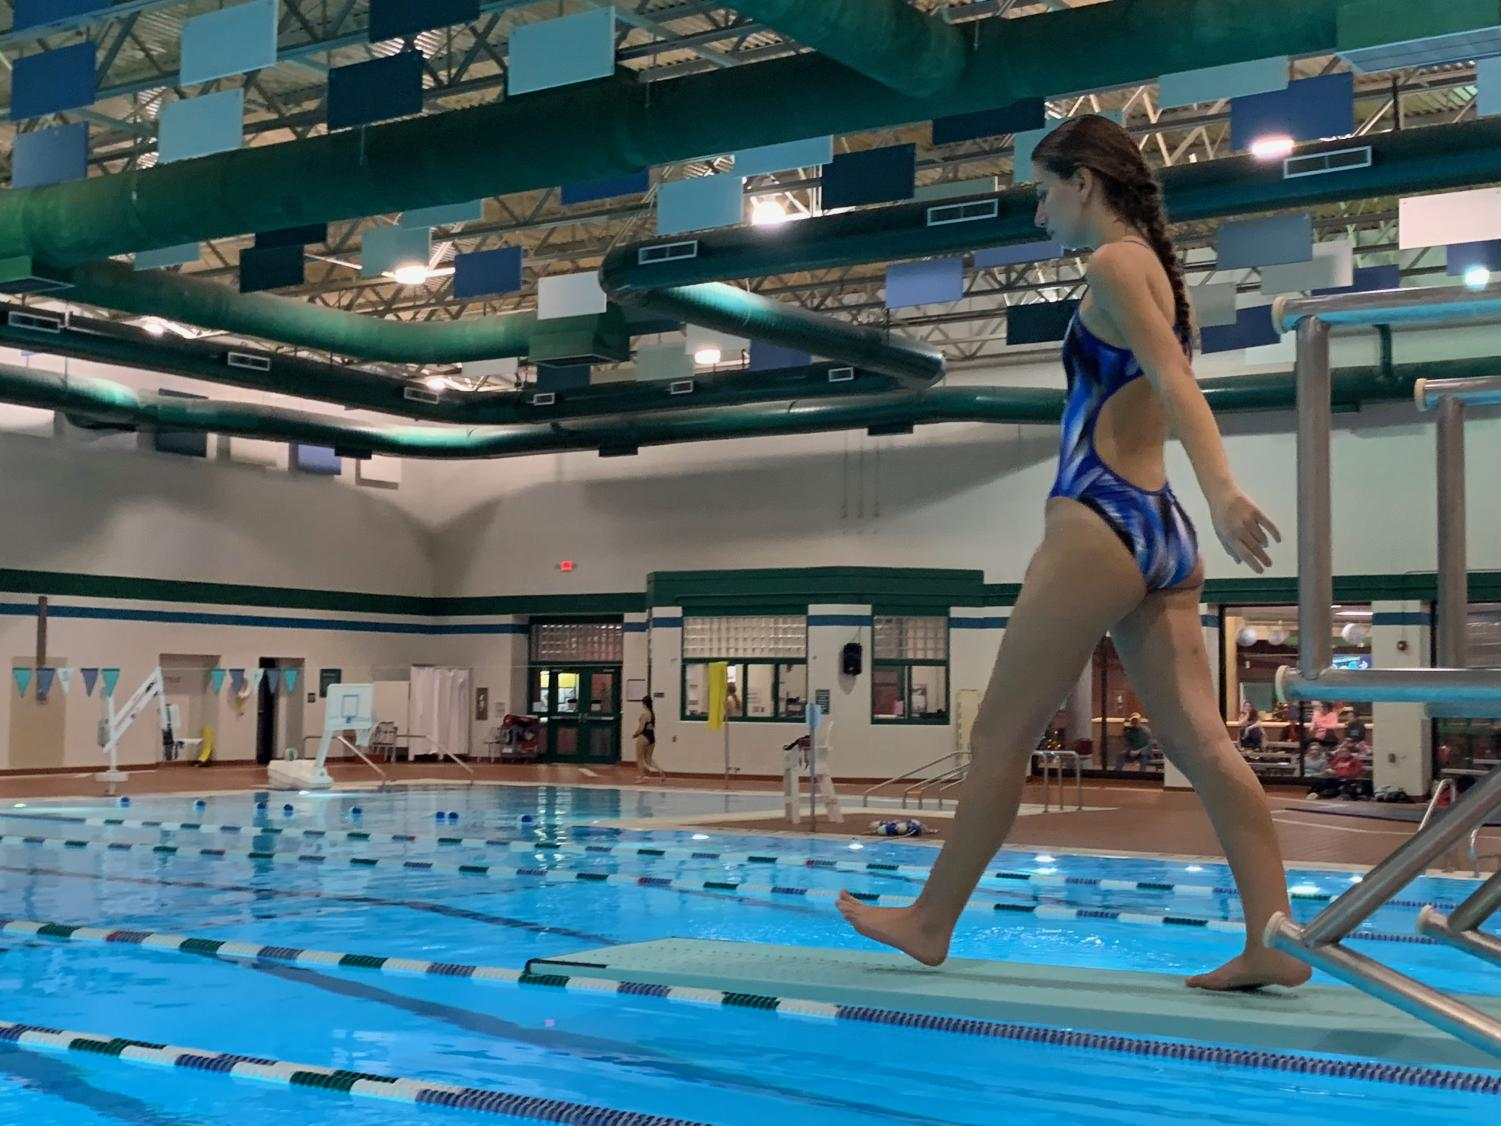 Senior captain Rachelle Jacob walks to the end of the board to start a back dive at Princess Anne Recreation Center on Nov. 19.